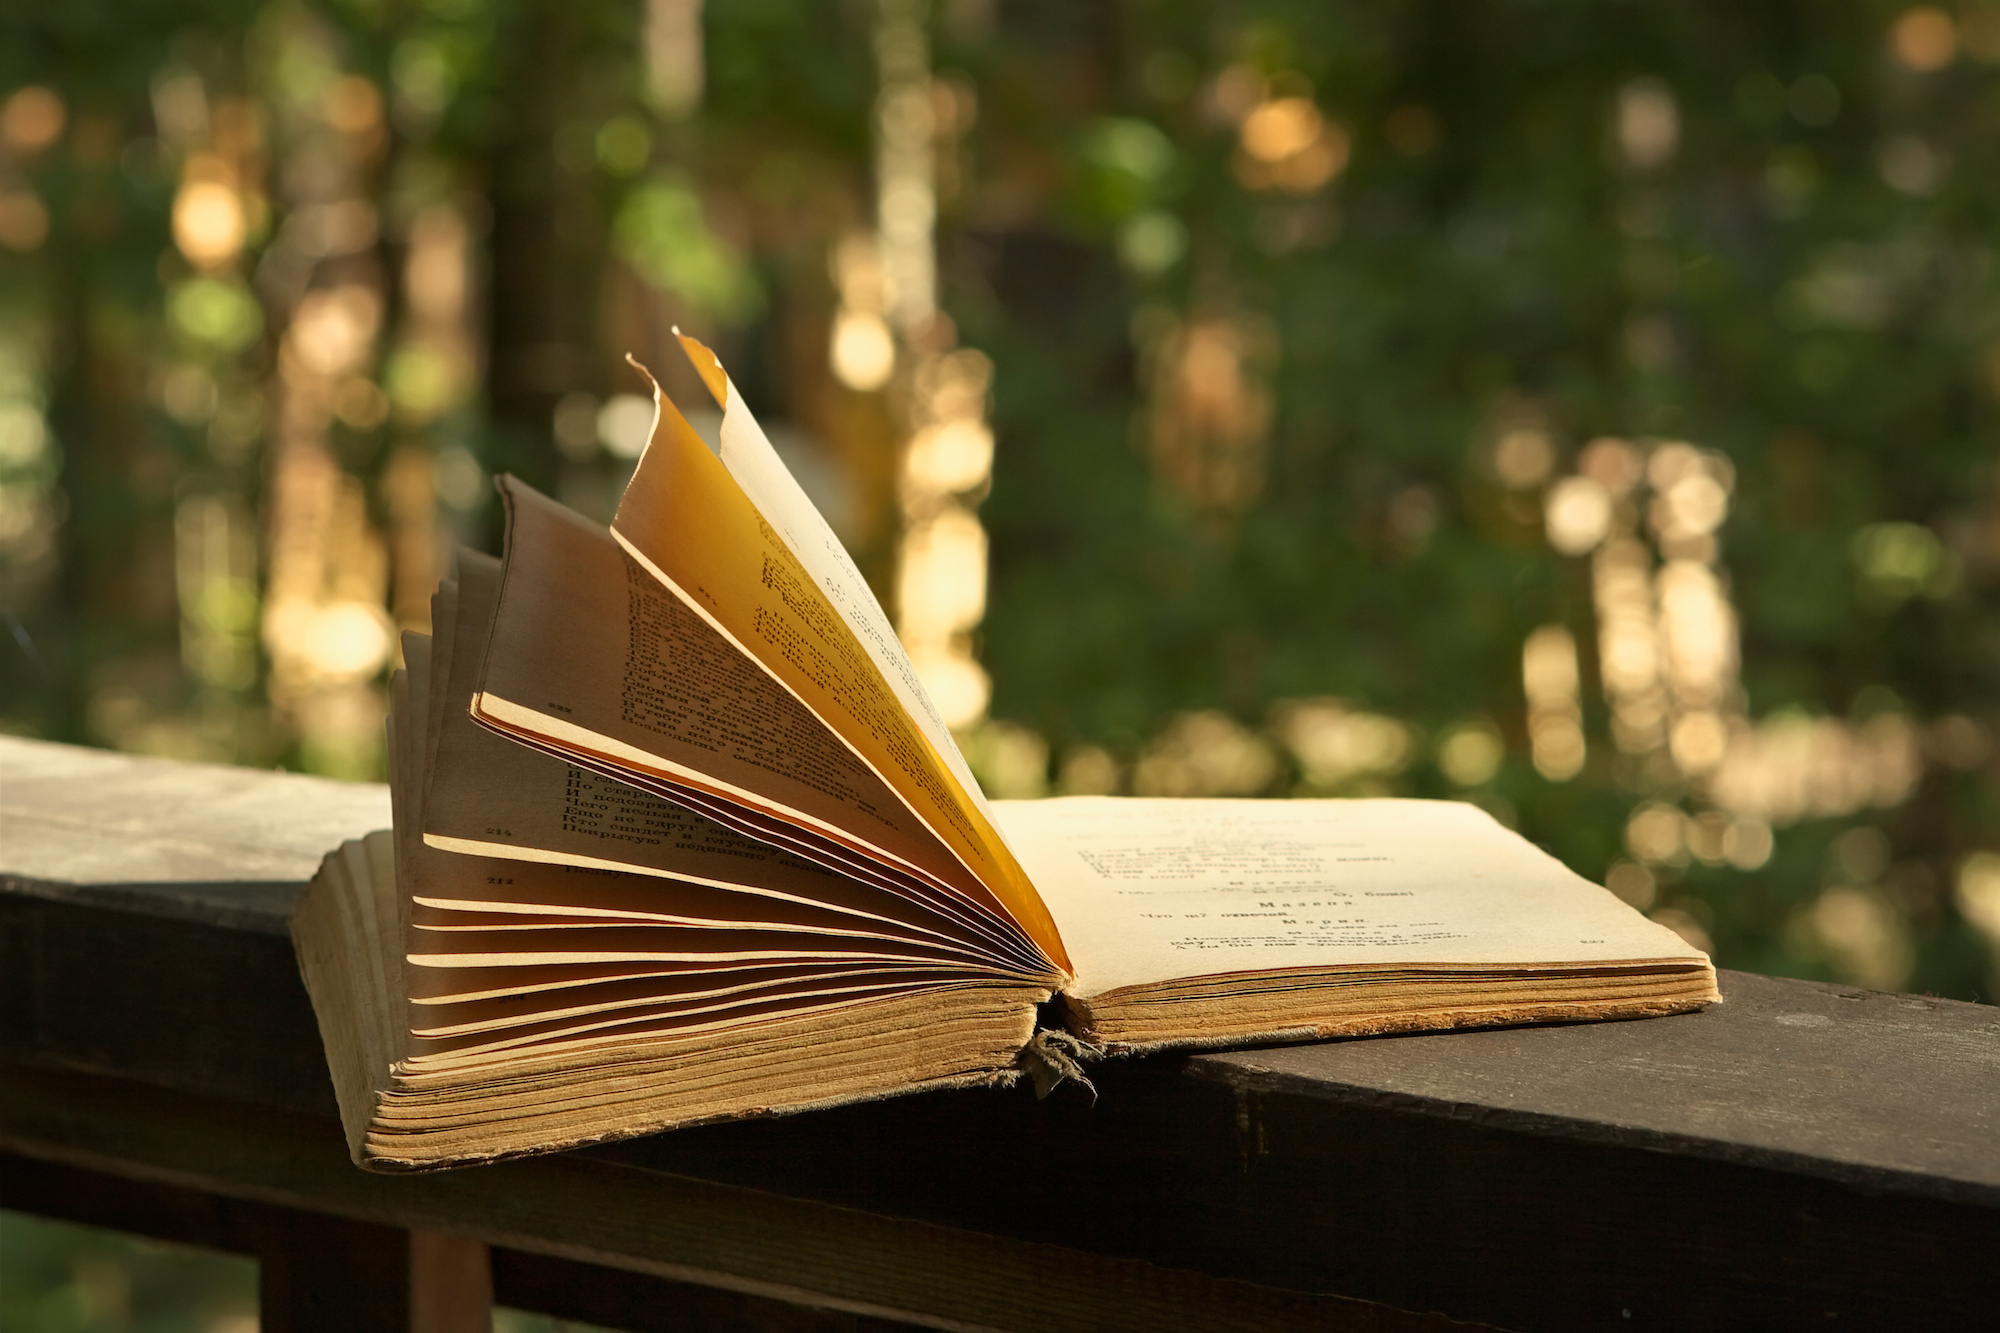 BEYOND LOCAL: No vacation this summer? Let a book transport you to foreign lands